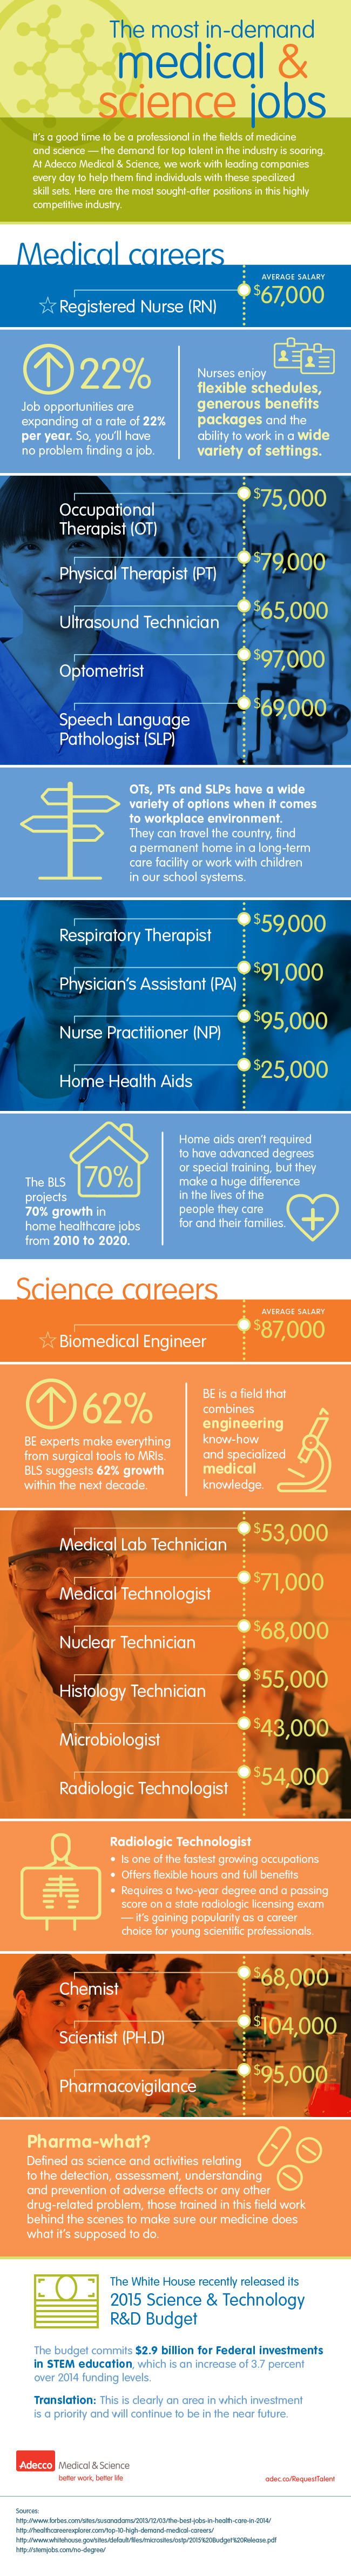 infographic - in demand medical and science jobs